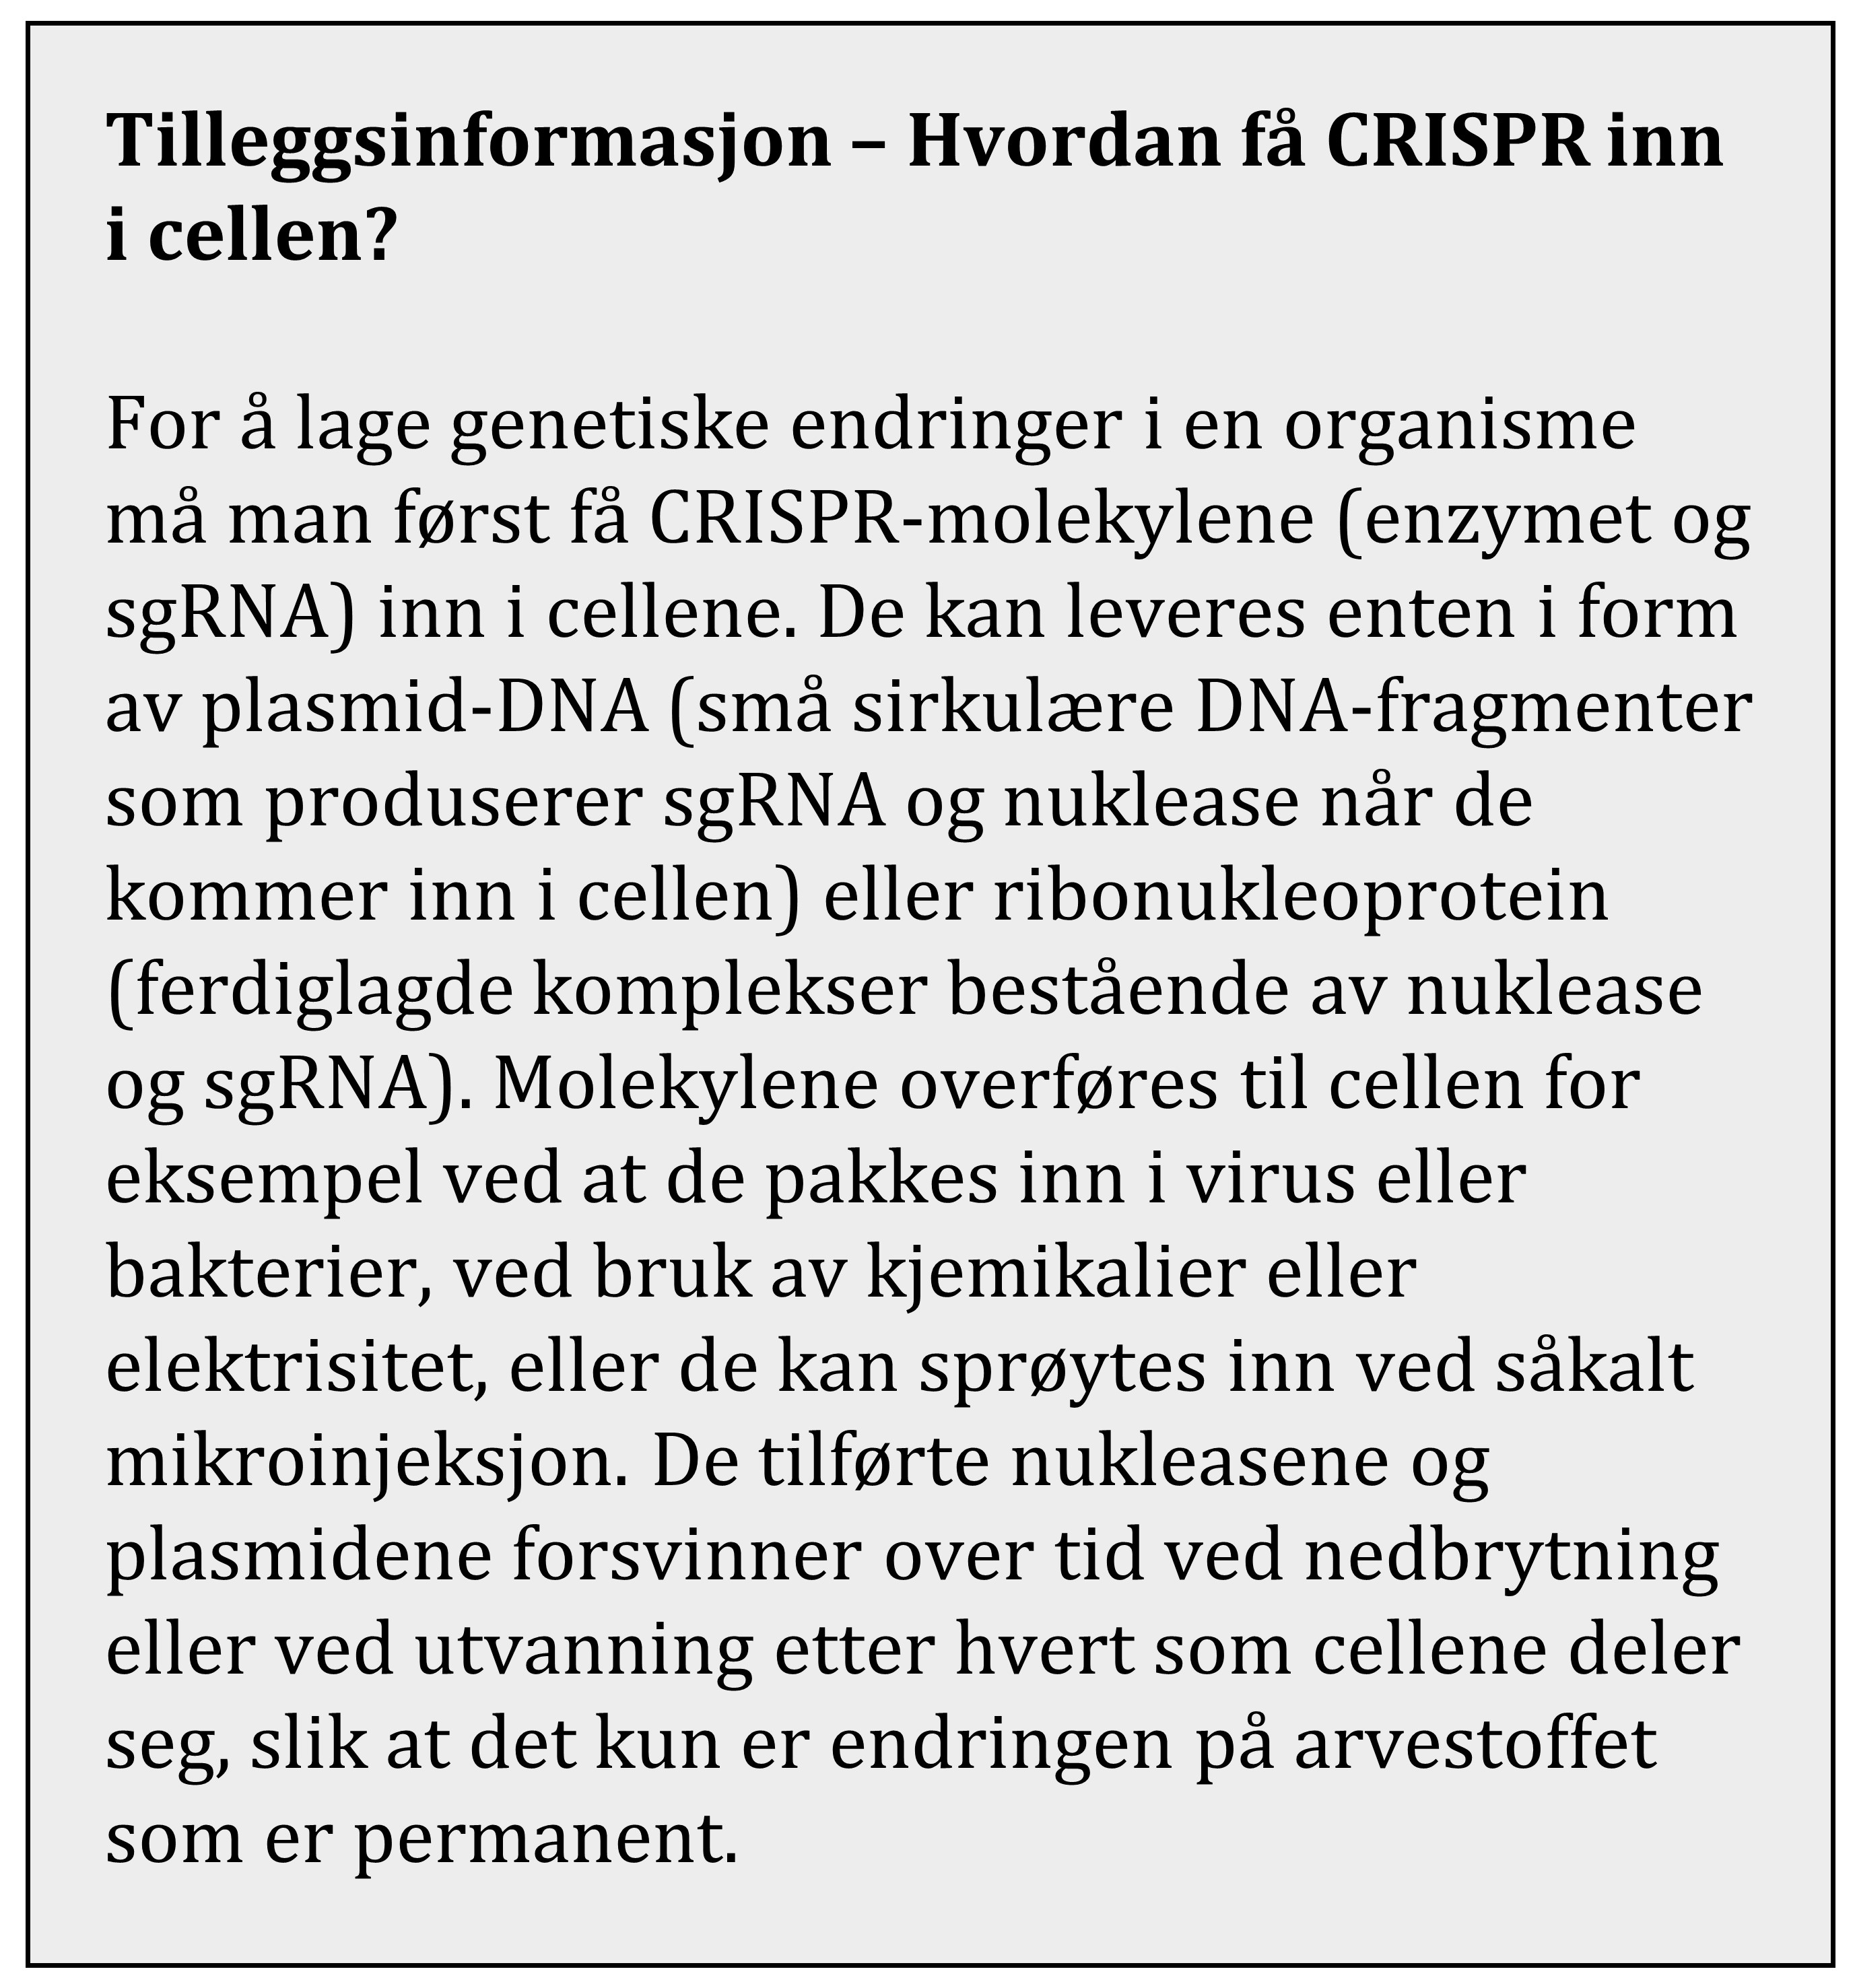 fakta crispr inn i cellen